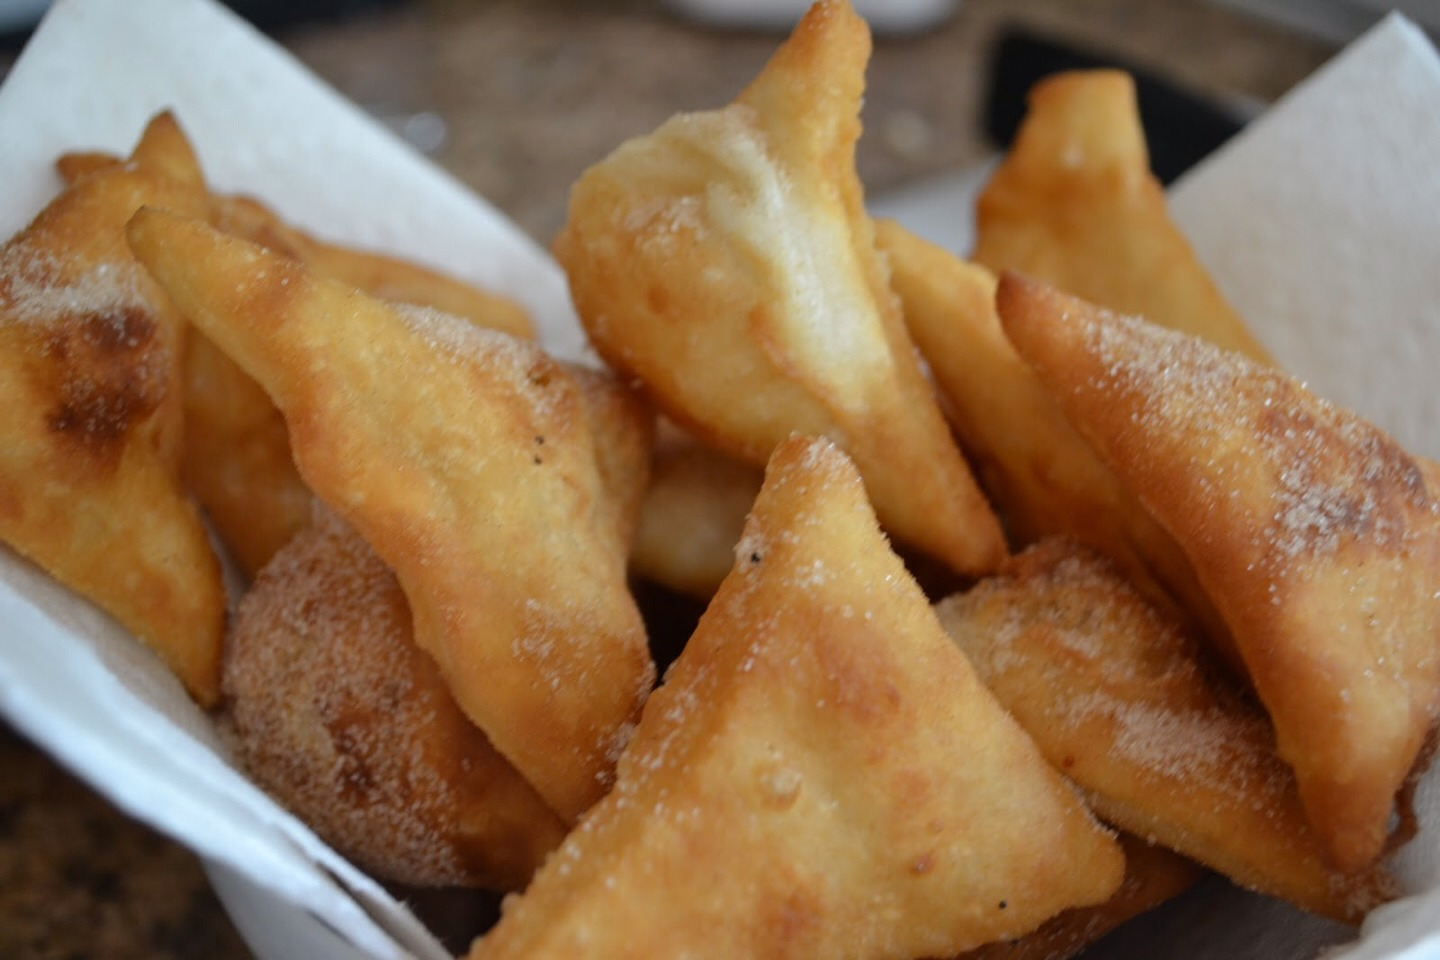 The dough should just about double in size. Punch down and roll out on a lightly floured surface so that it's about 1/4 inch thick. Cut into triangles, squares or other fun shapes. In a large, heavy pot heat enough oilso the Sopapillas can float to around 375°F. Fry the Sopapillas until browned